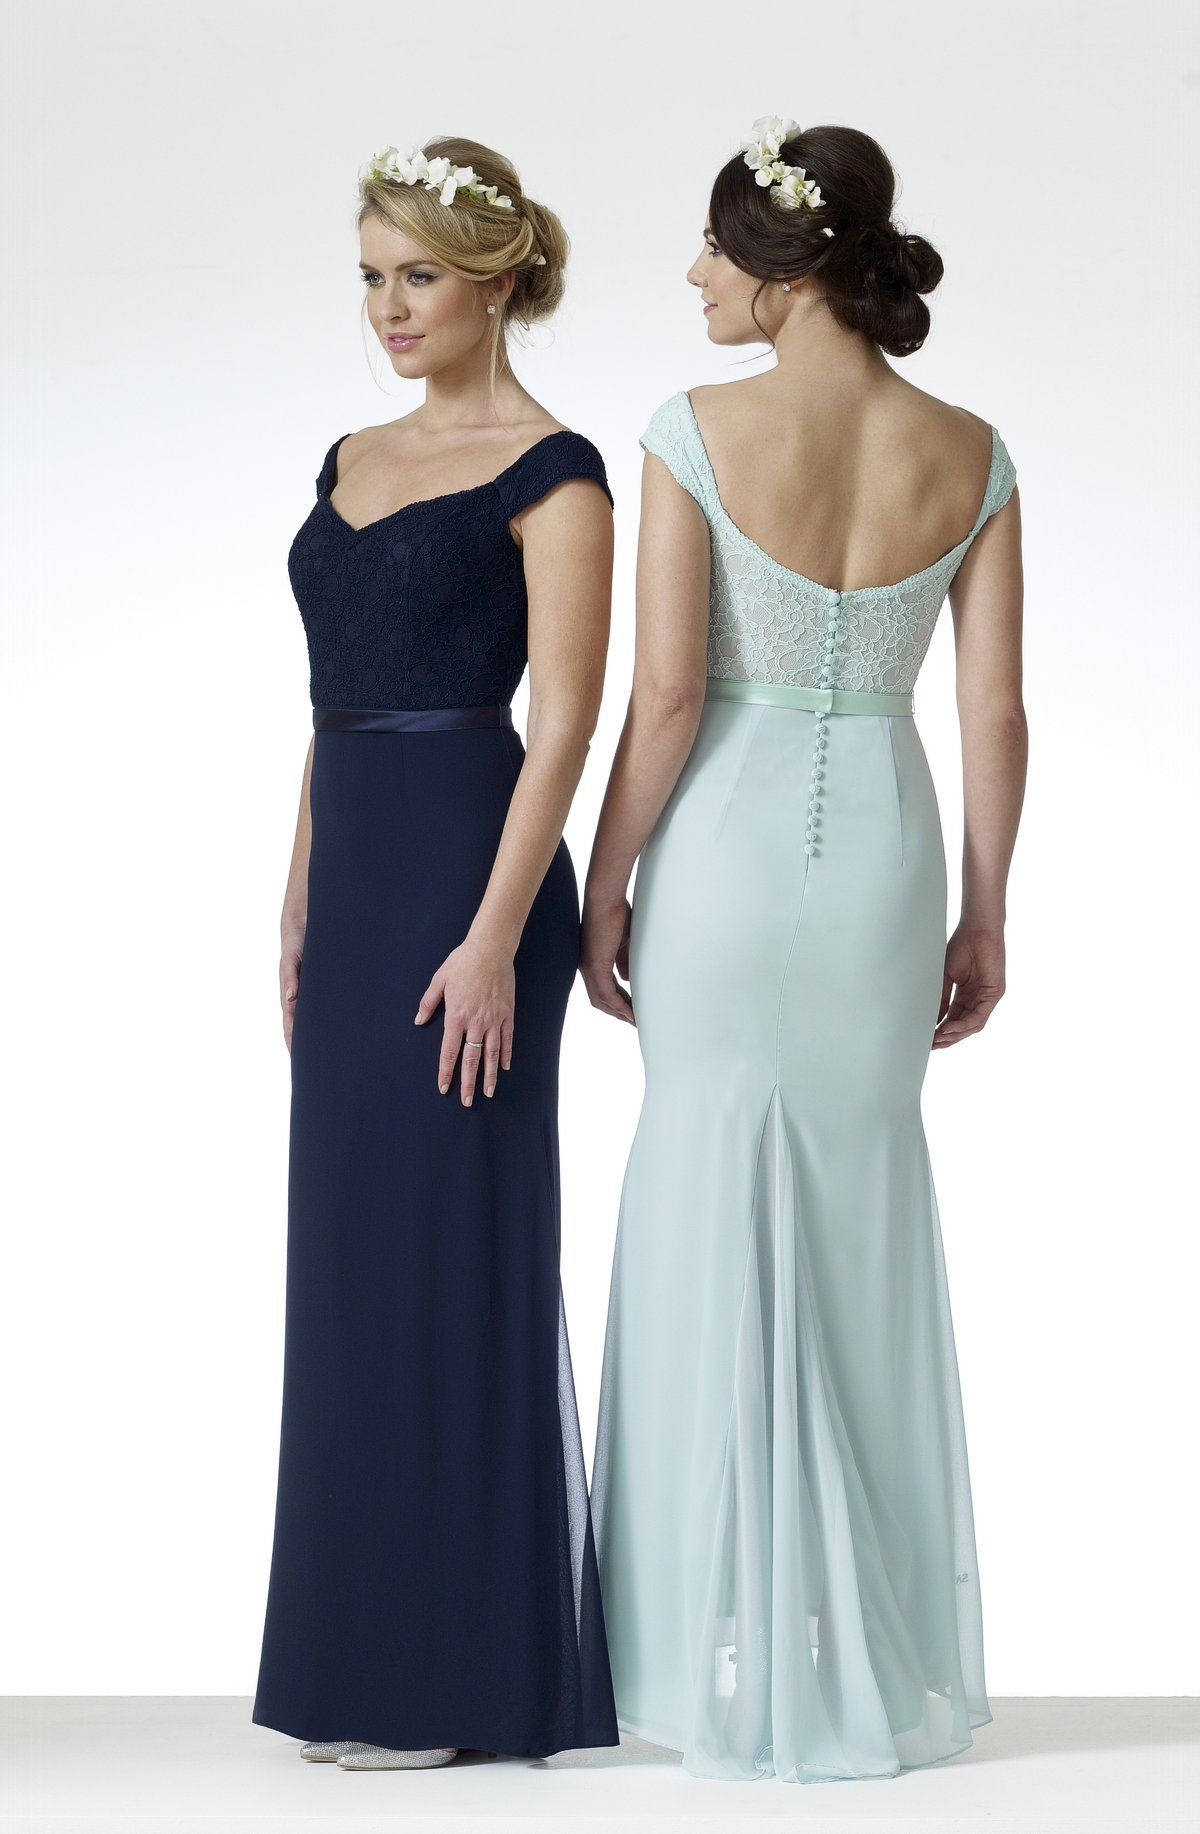 Dab11710 dzage bridesmaid collection veromia our bridesmaids dab11710 dzage bridesmaid collection veromia ombrellifo Choice Image